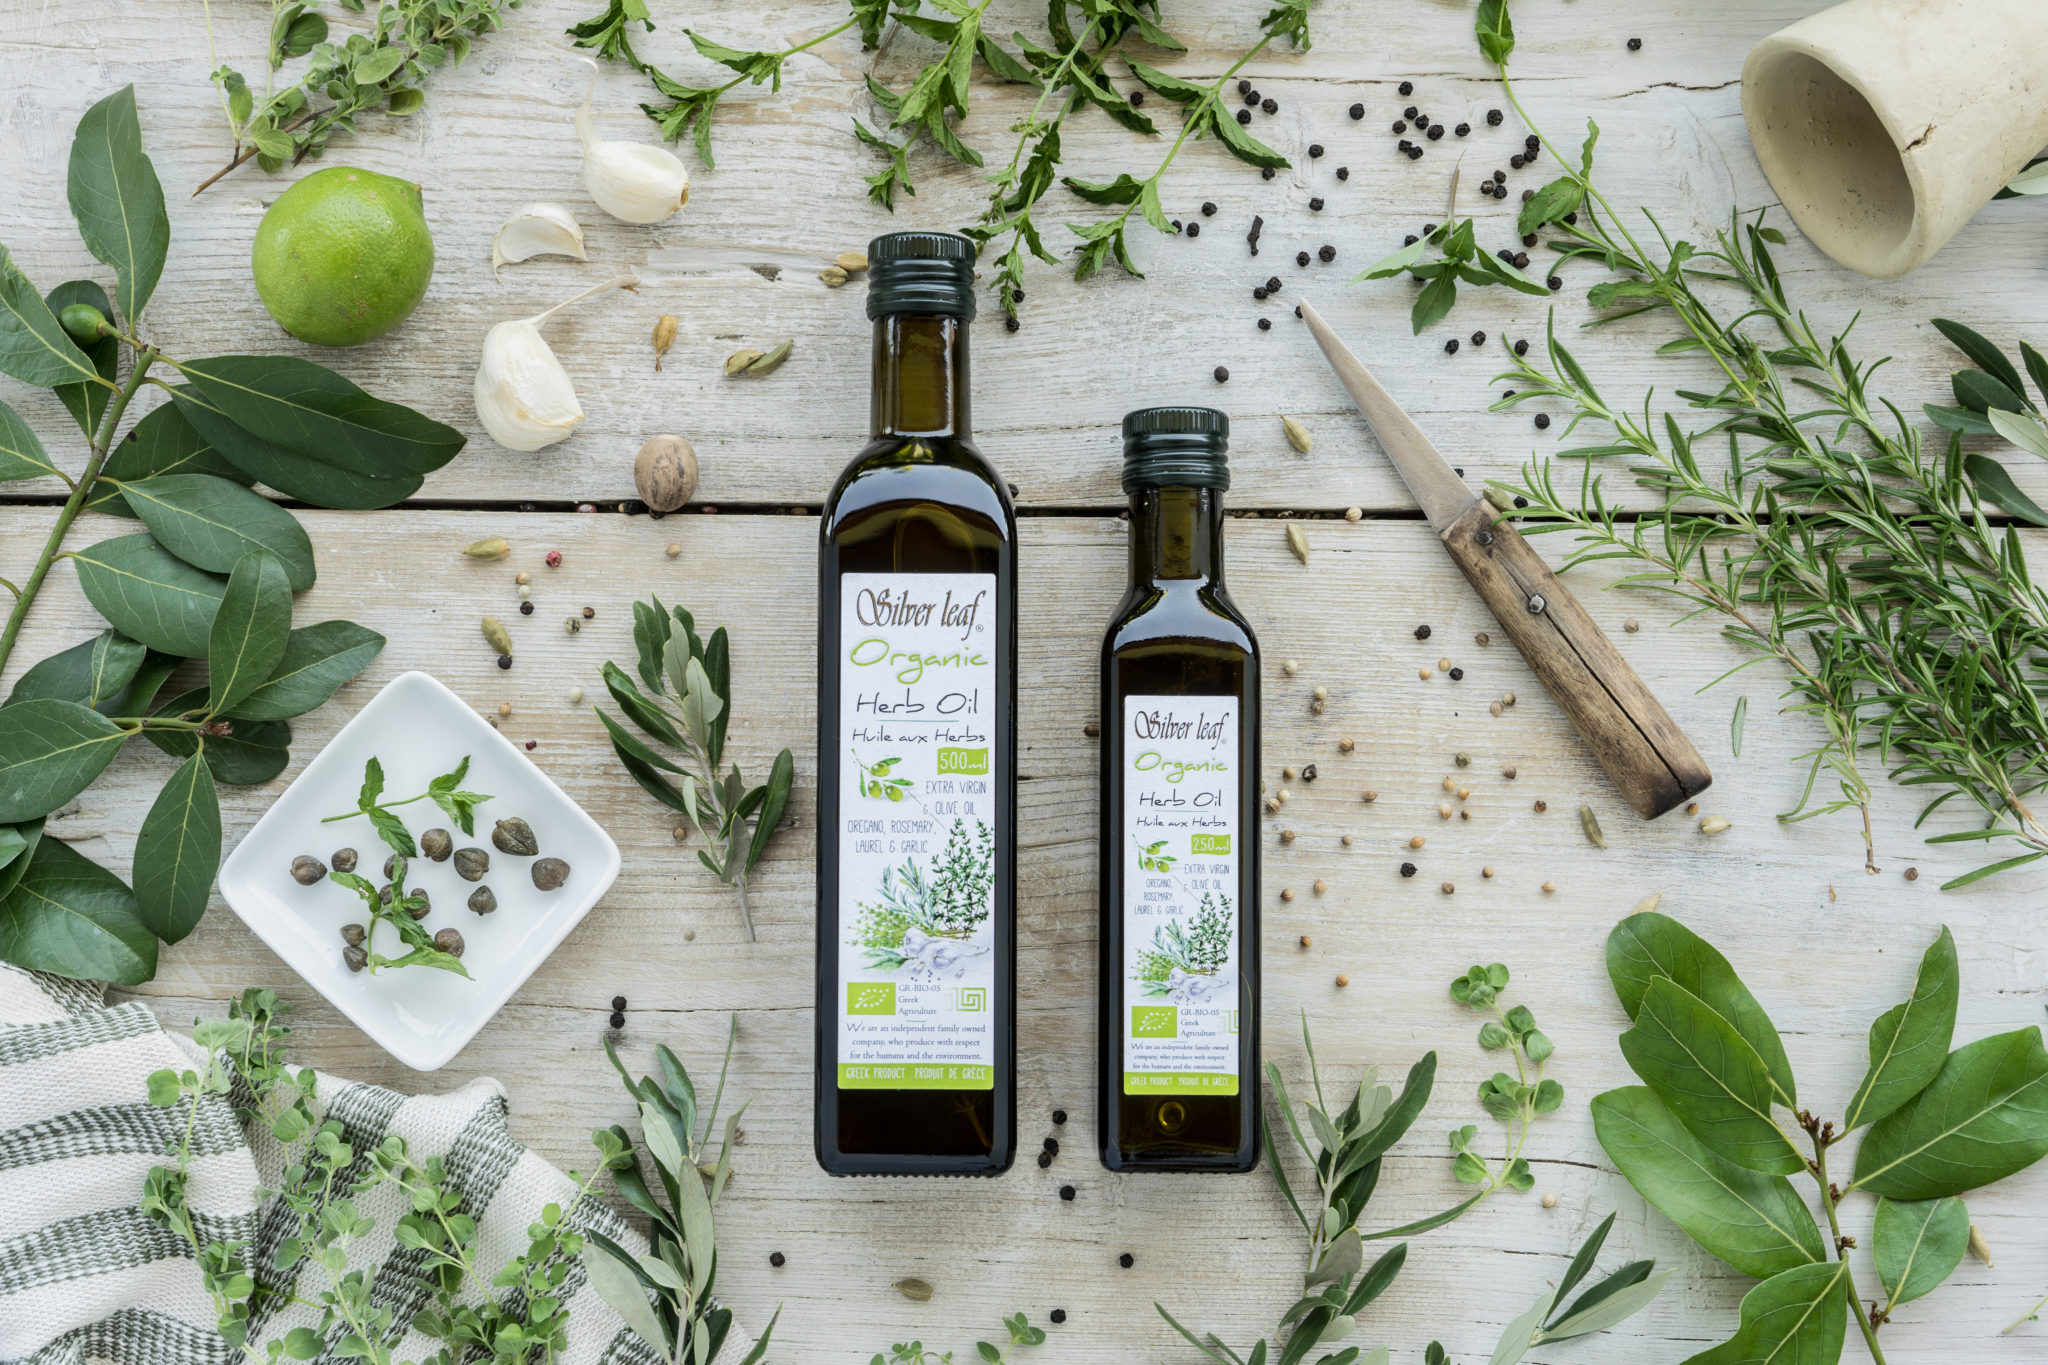 silver leaf extra virgin olive oil with herbs